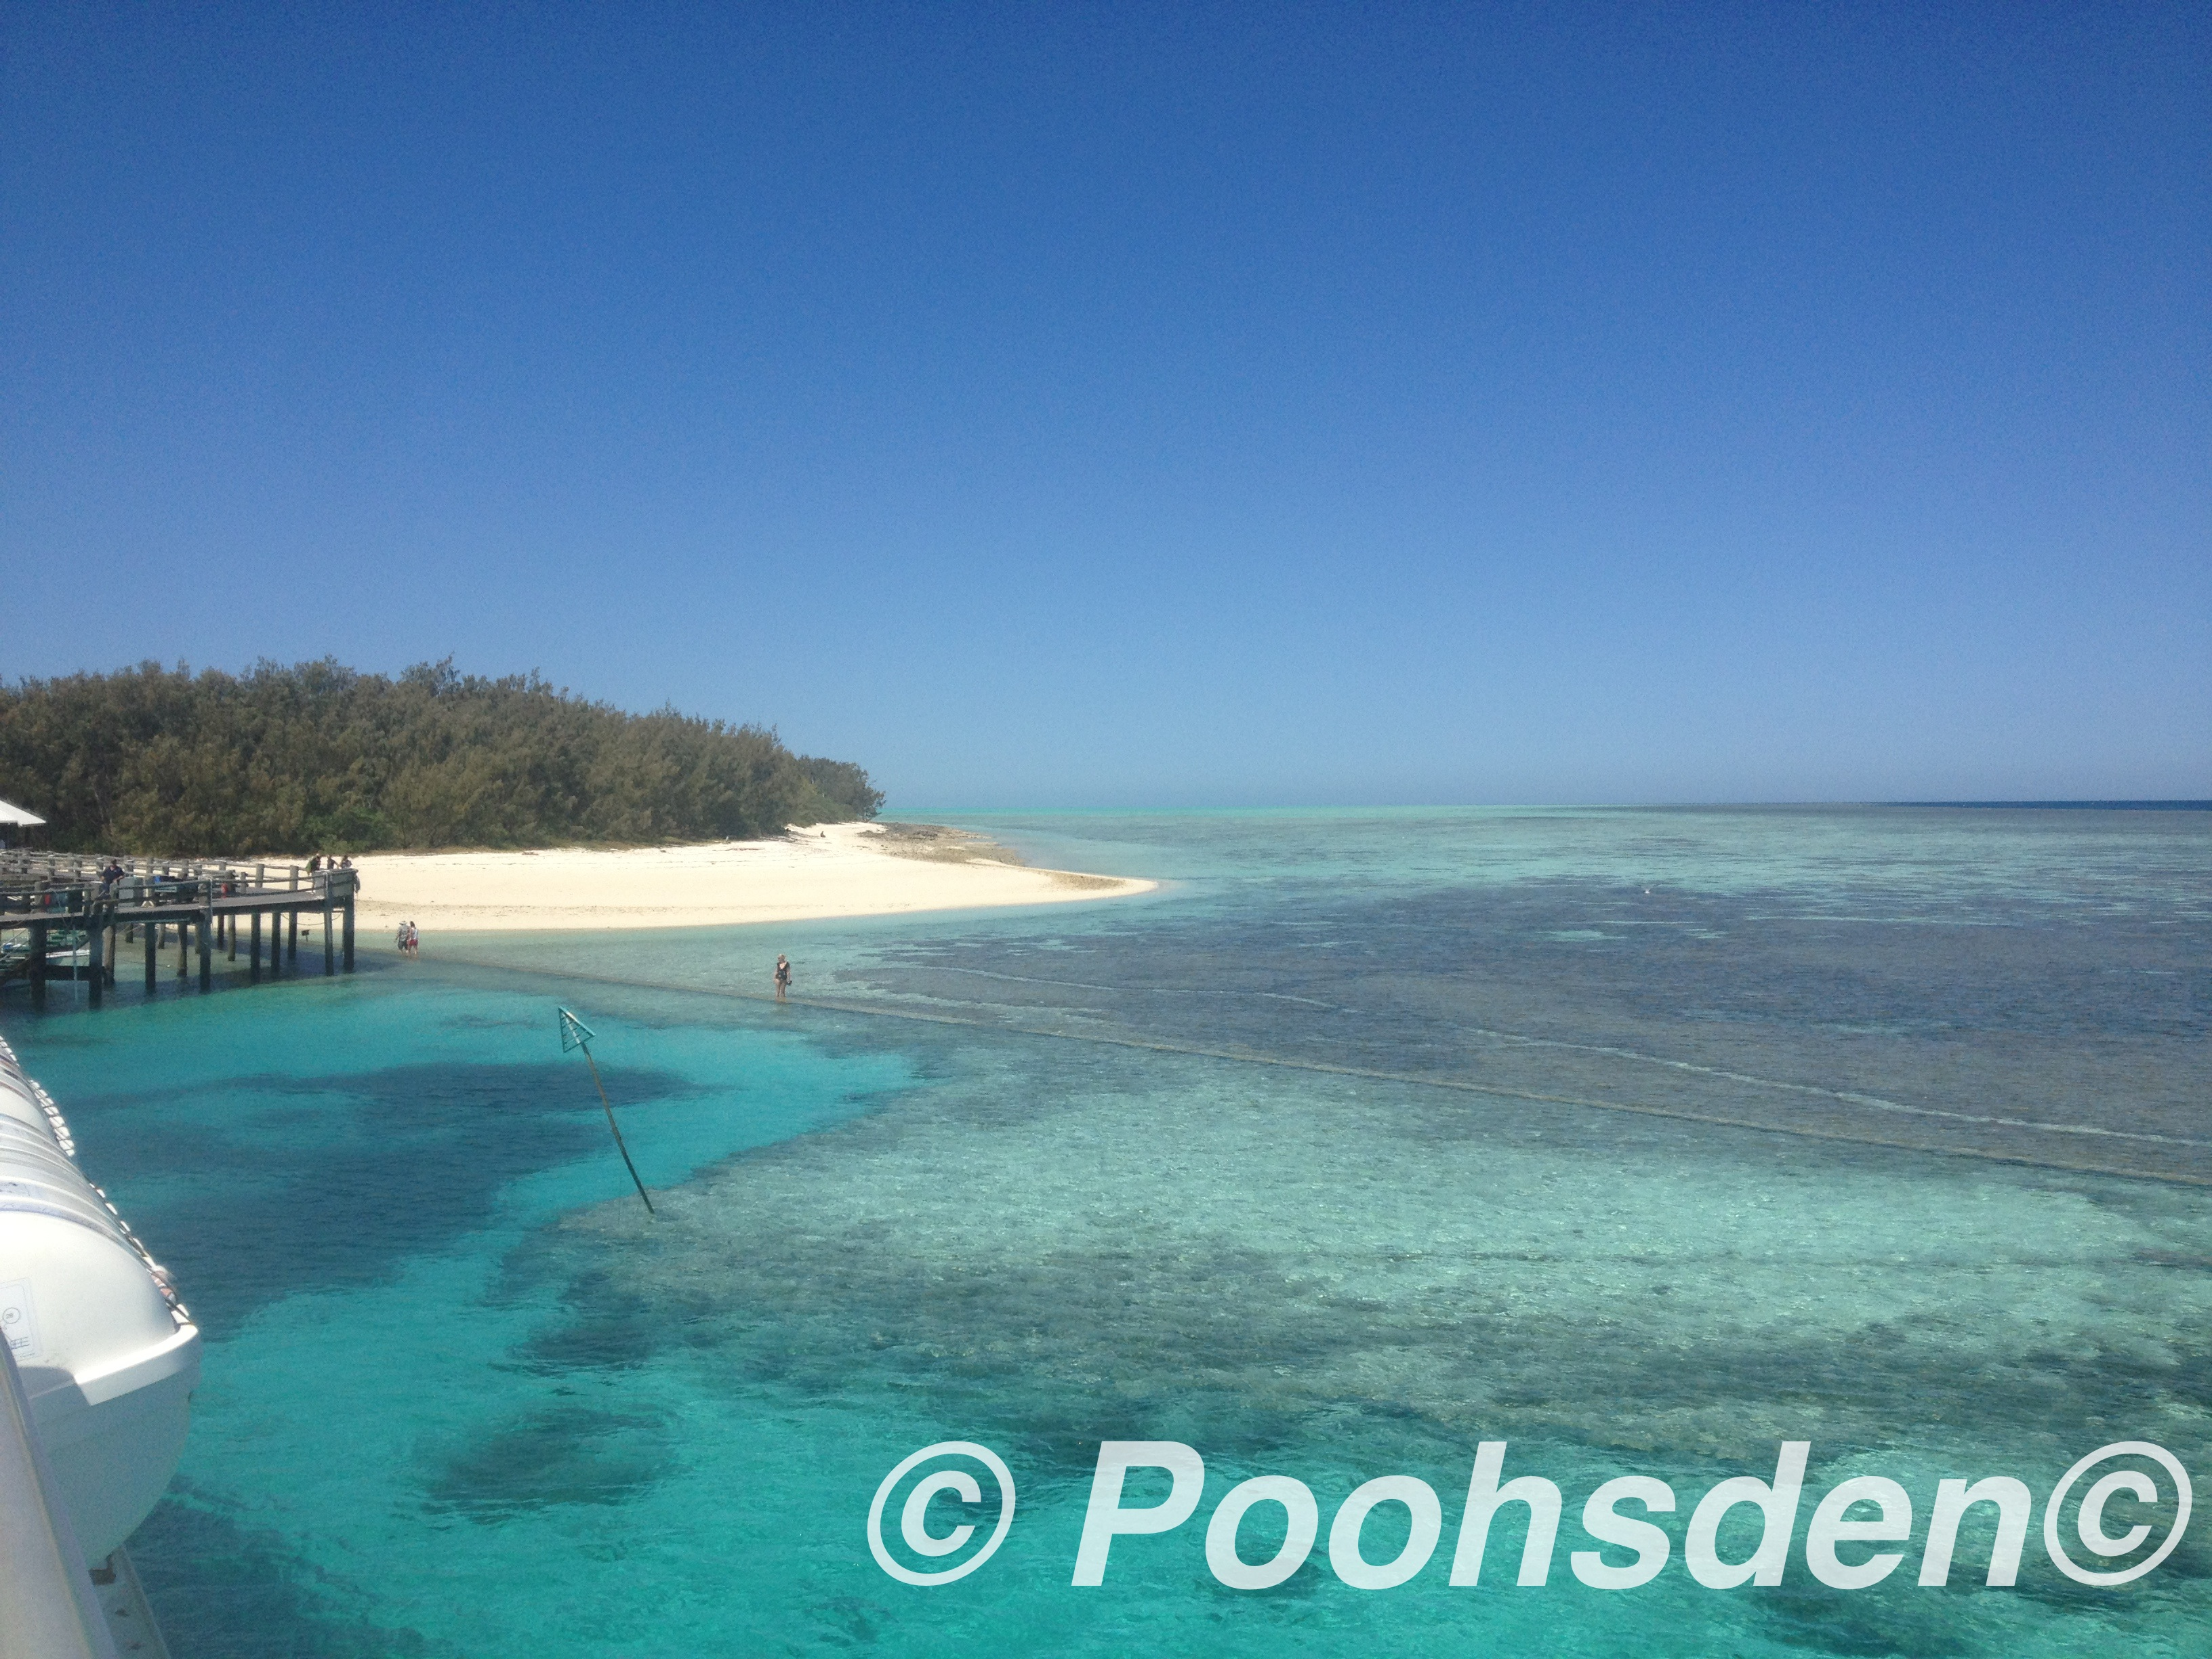 Taking in the perfectly blue waters at Heron Island